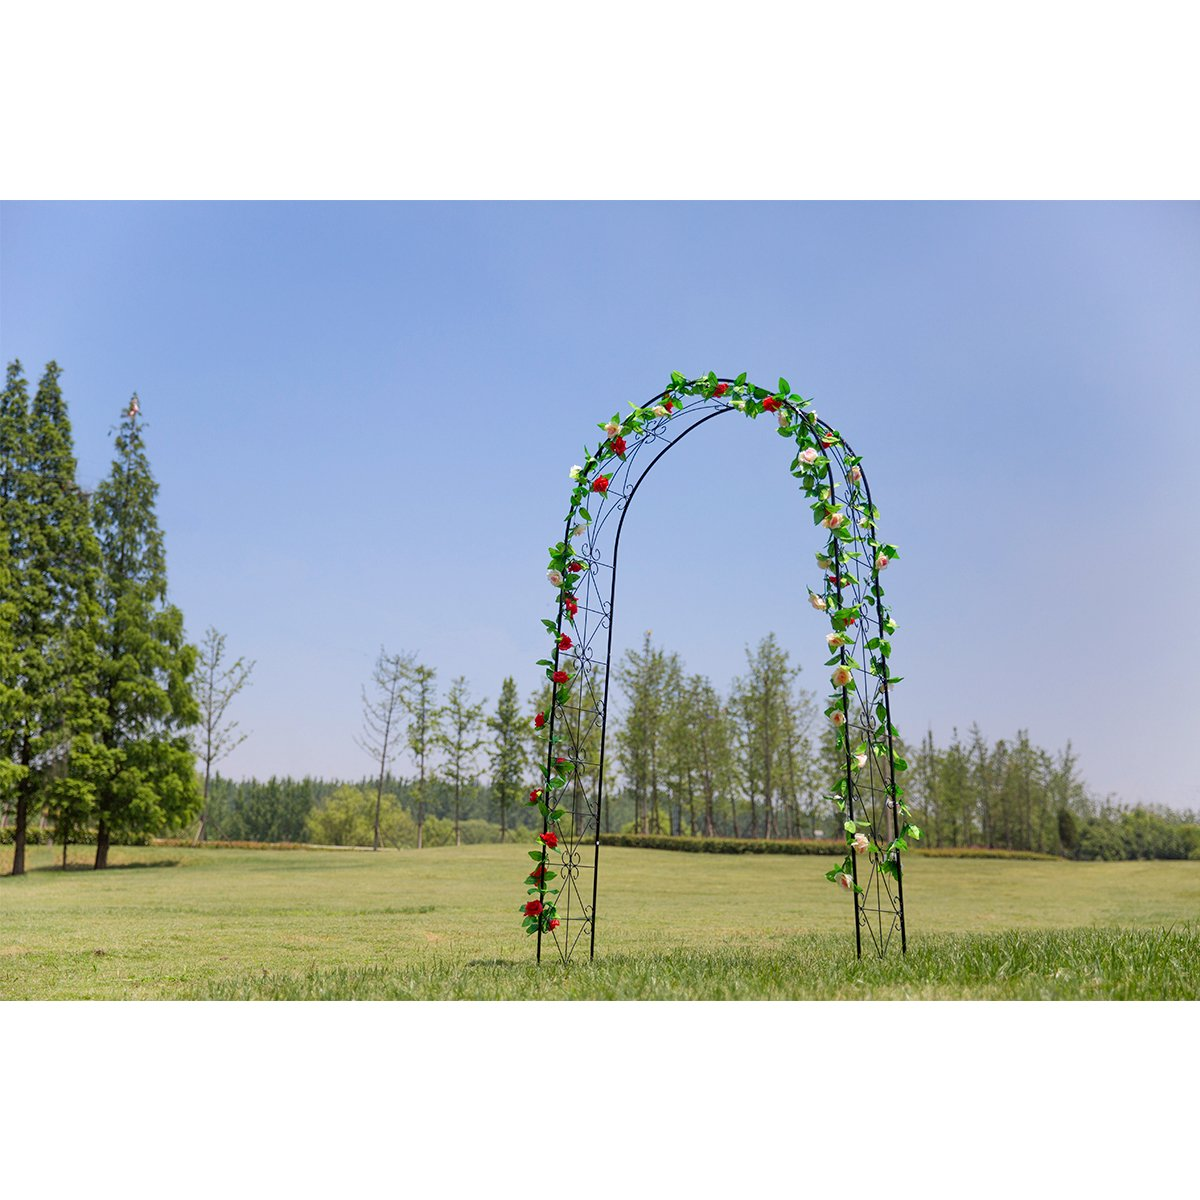 HollyHOME Decorative Metal Garden Arch, Sturdy Garden Arbor with Round Top, Perfect for Climbing Plant, 75 High x 39 Wide